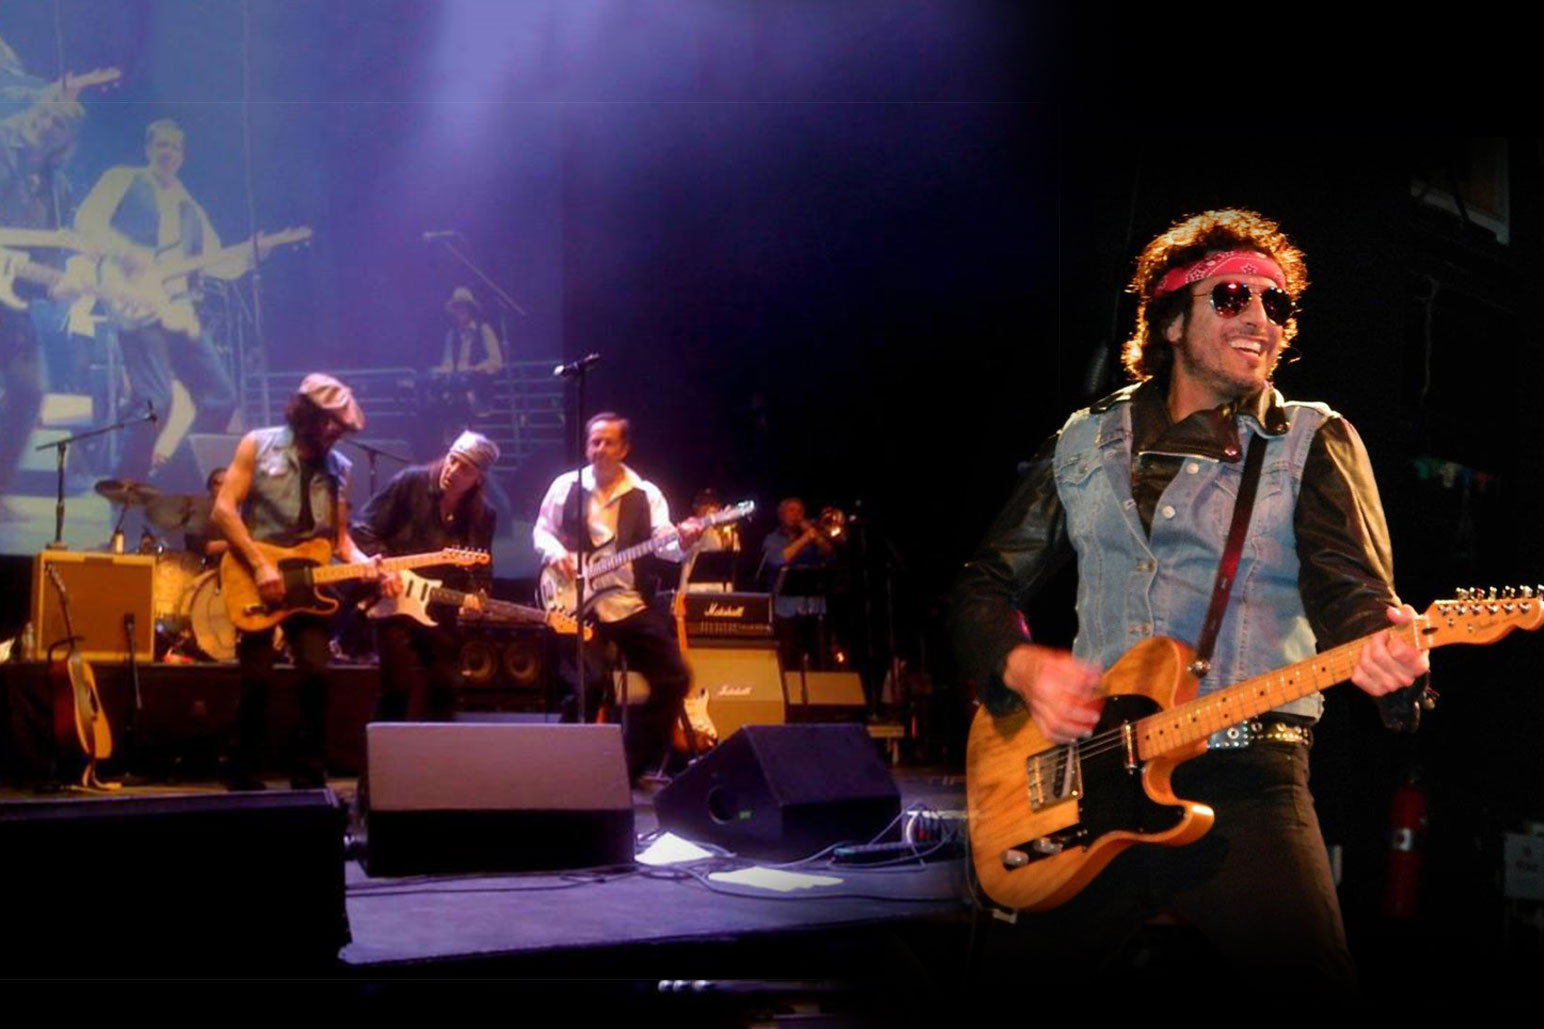 Green Flash Concert: Livin' On A Prayer and The Springsteen Experience